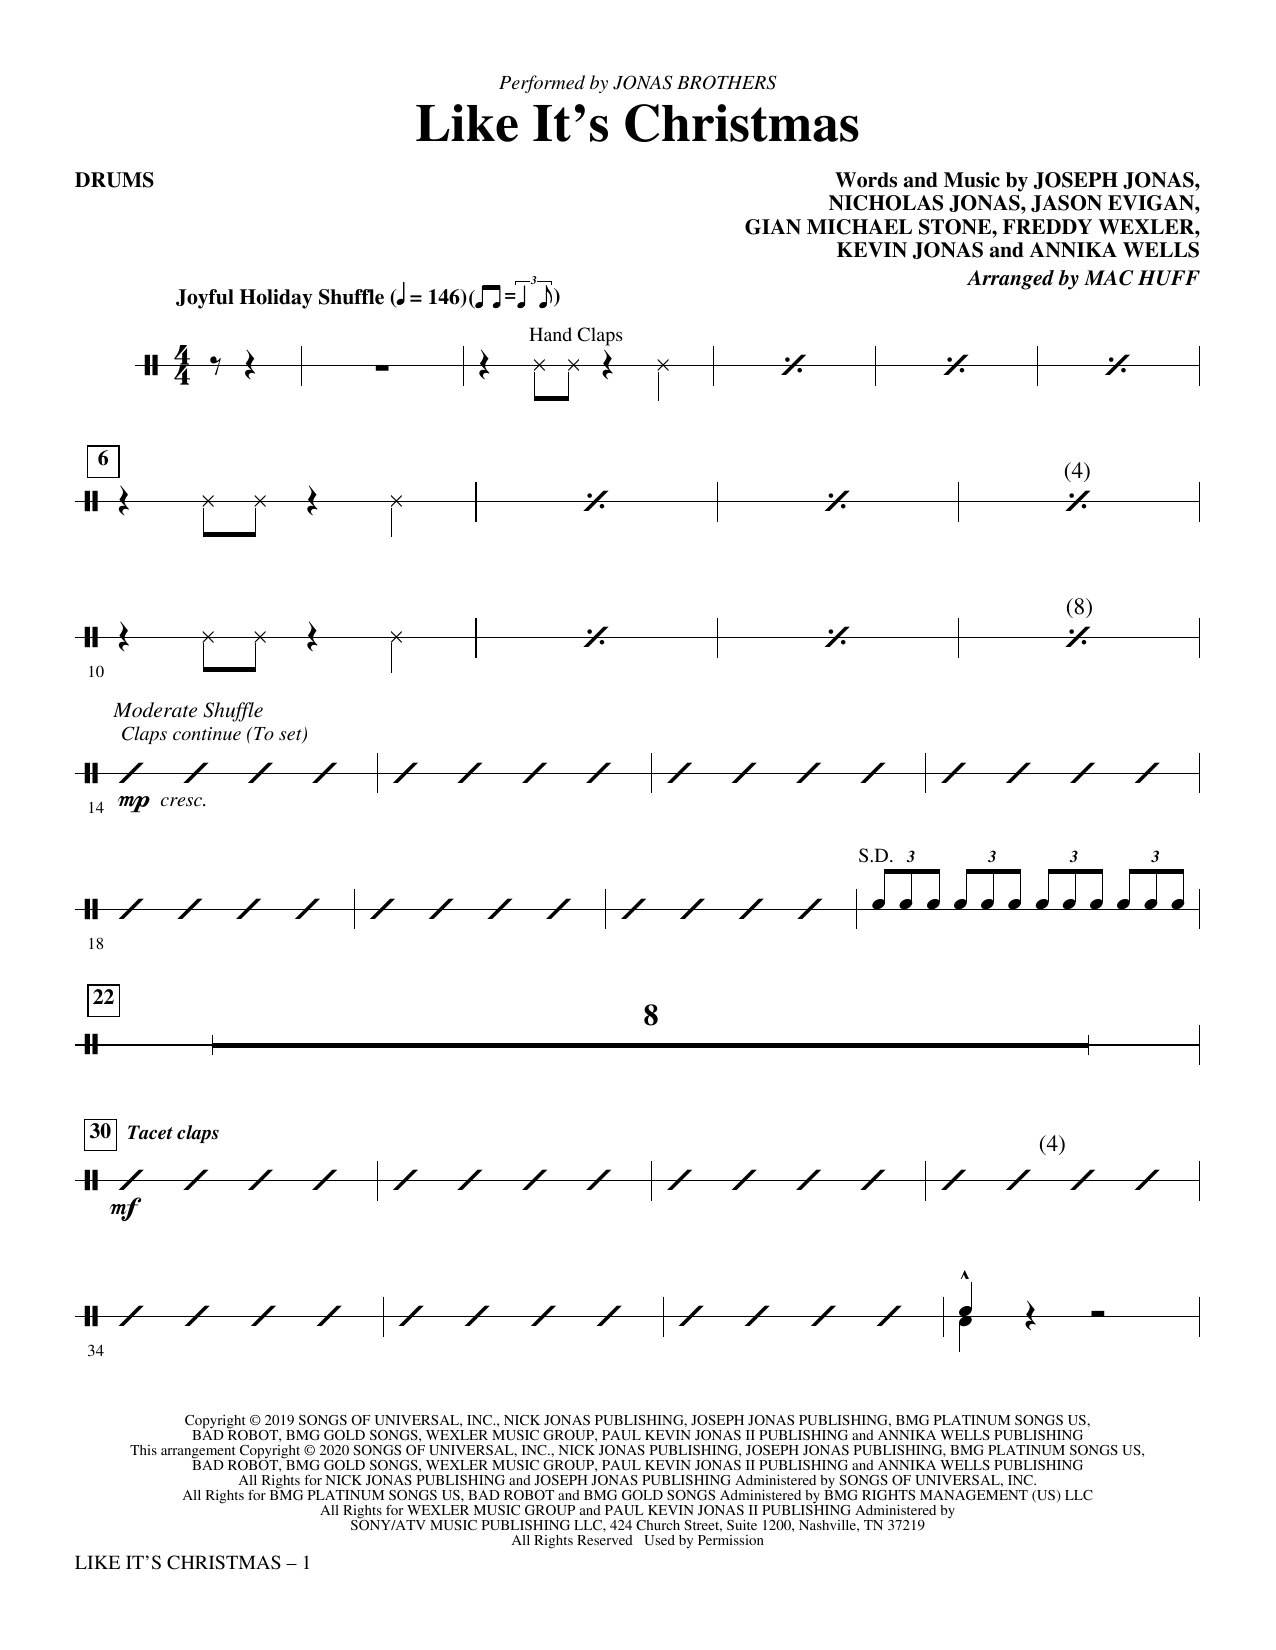 Jonas Brothers Like It's Christmas (arr. Mac Huff) - Drums sheet music notes and chords. Download Printable PDF.